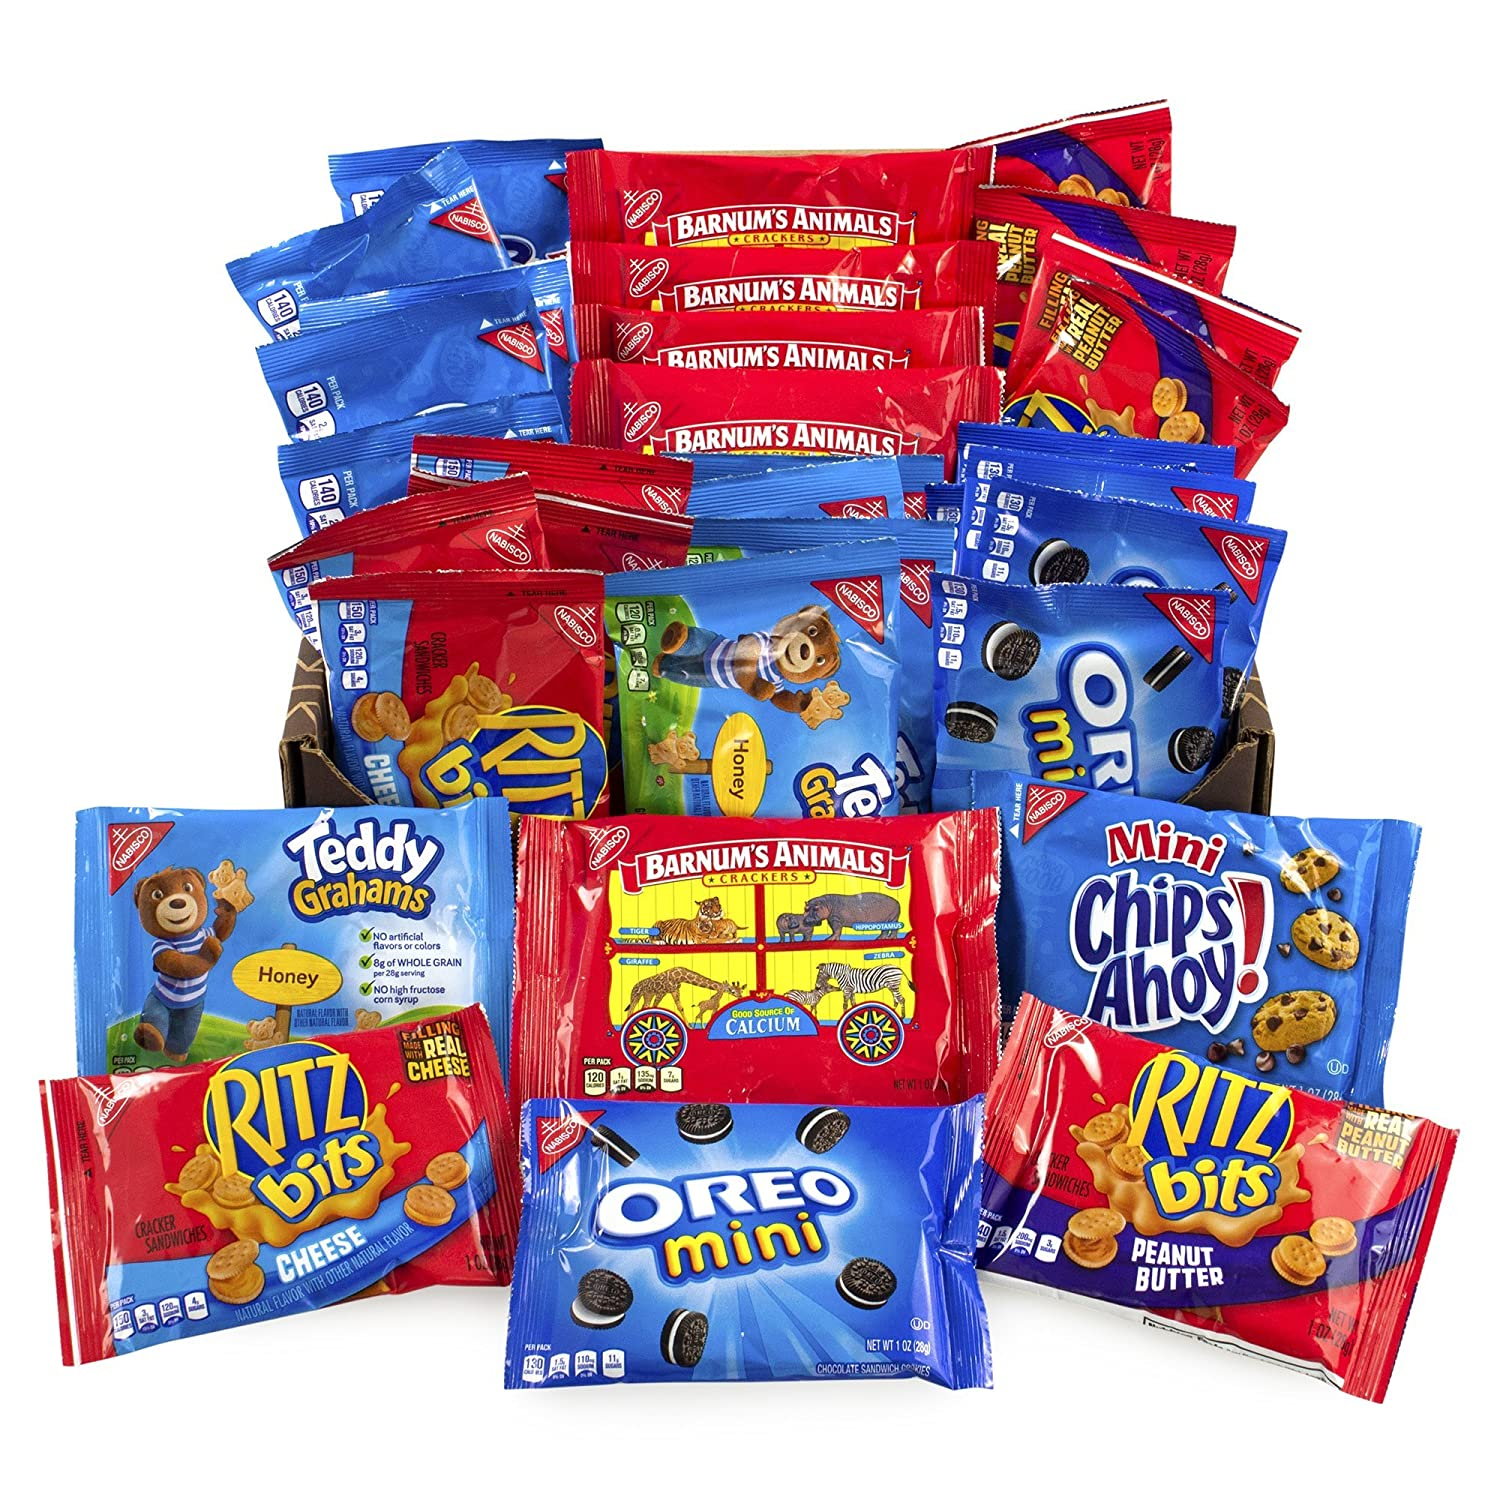 Nabisco Lunch Snack Favorites, 32 Count Variety Pack - Includes Oreo Mini Cookies, Chips Ahoy! Mini, Ritz Bits, Barnum's Animal Crackers, and Teddy Grahams Barnum' s Animal Crackers Mondelez